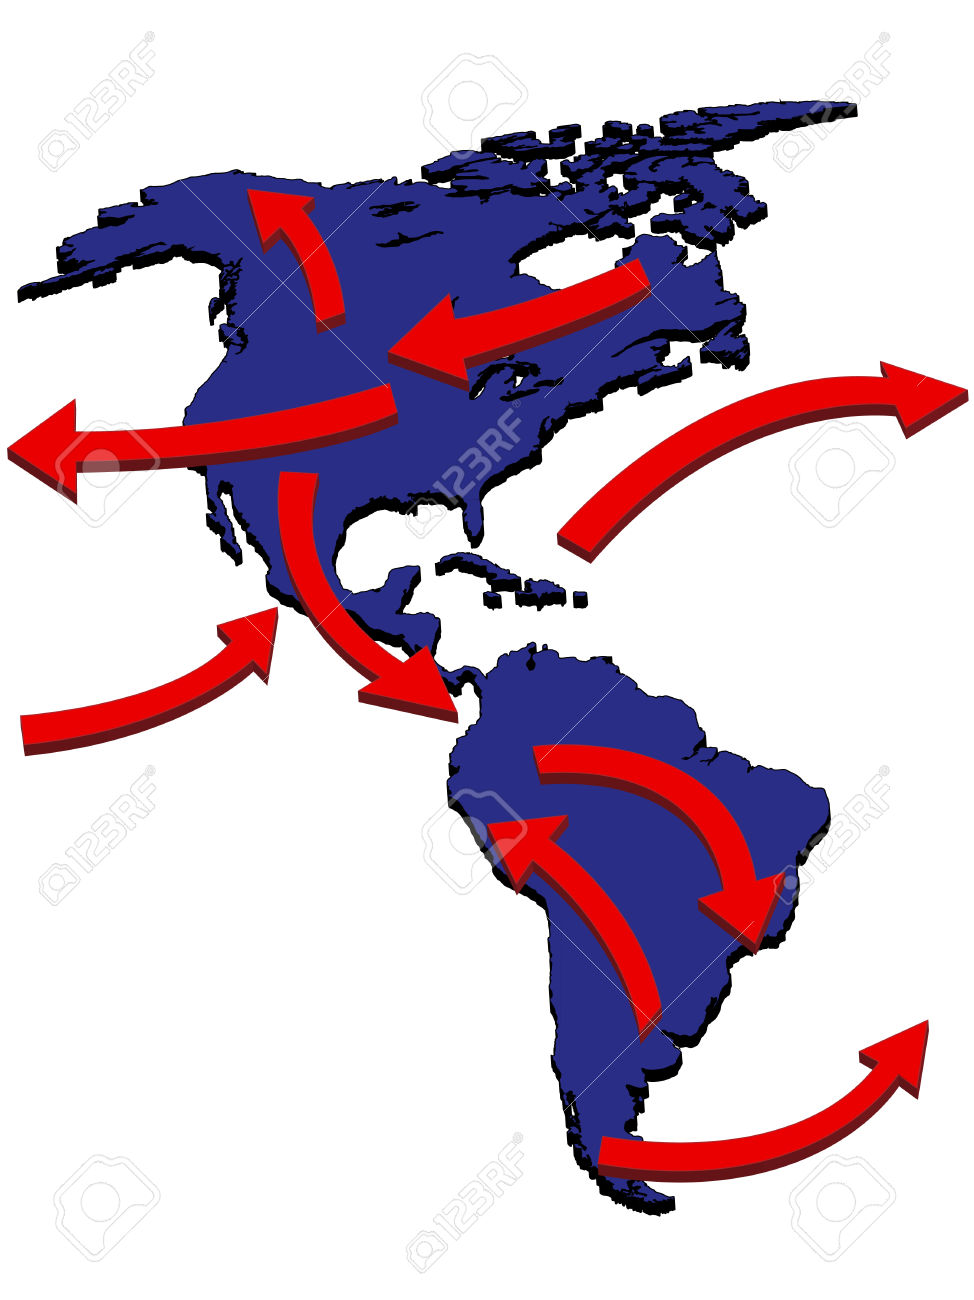 Americas Expansion Market Trade Routes Business Map 3D Royalty.